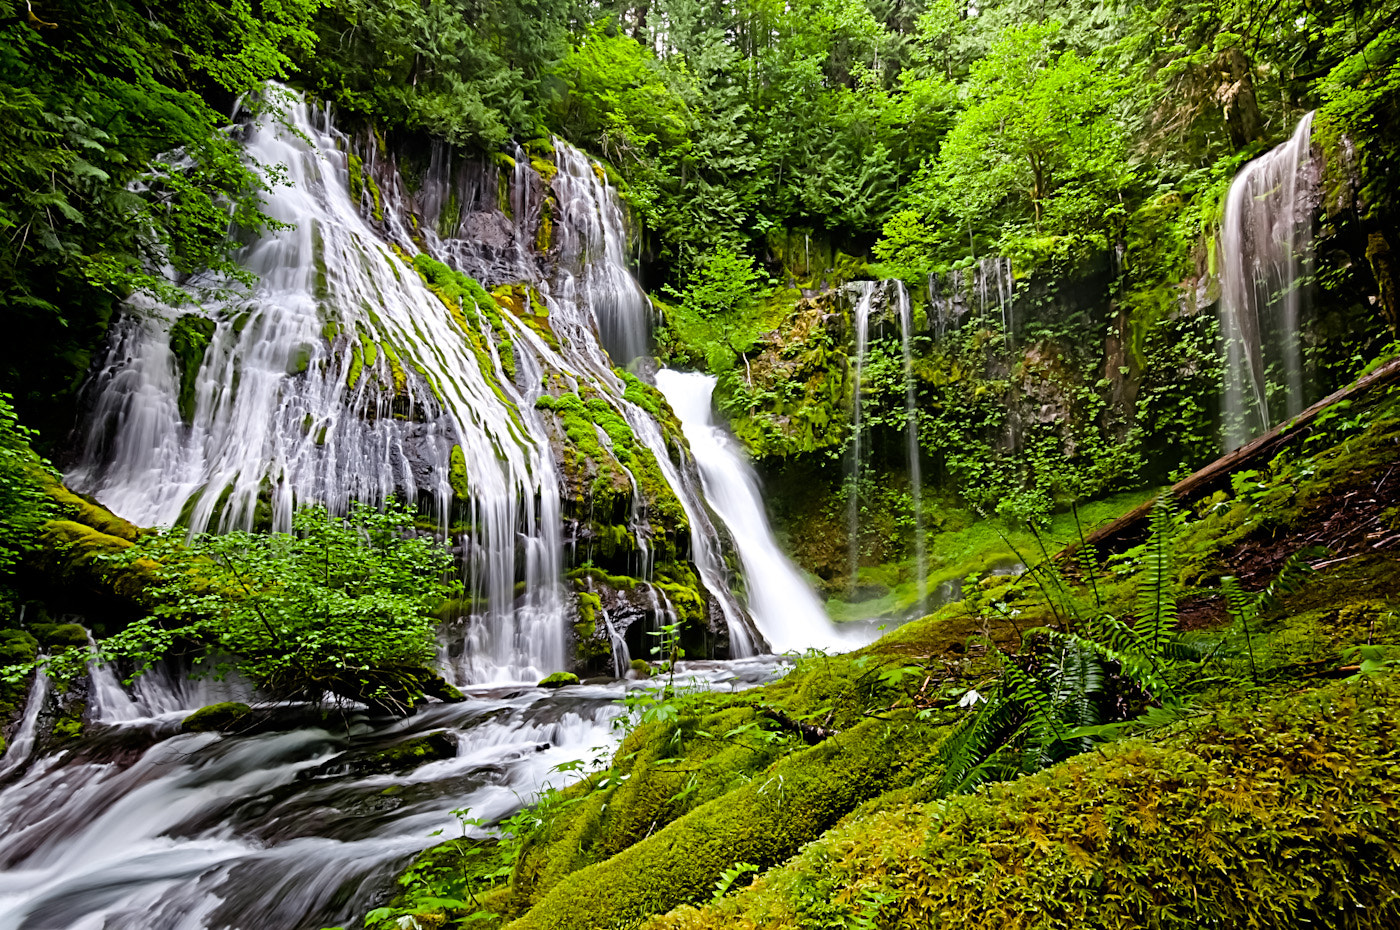 Photograph Panther Creek Falls by Brian Bonham on 500px